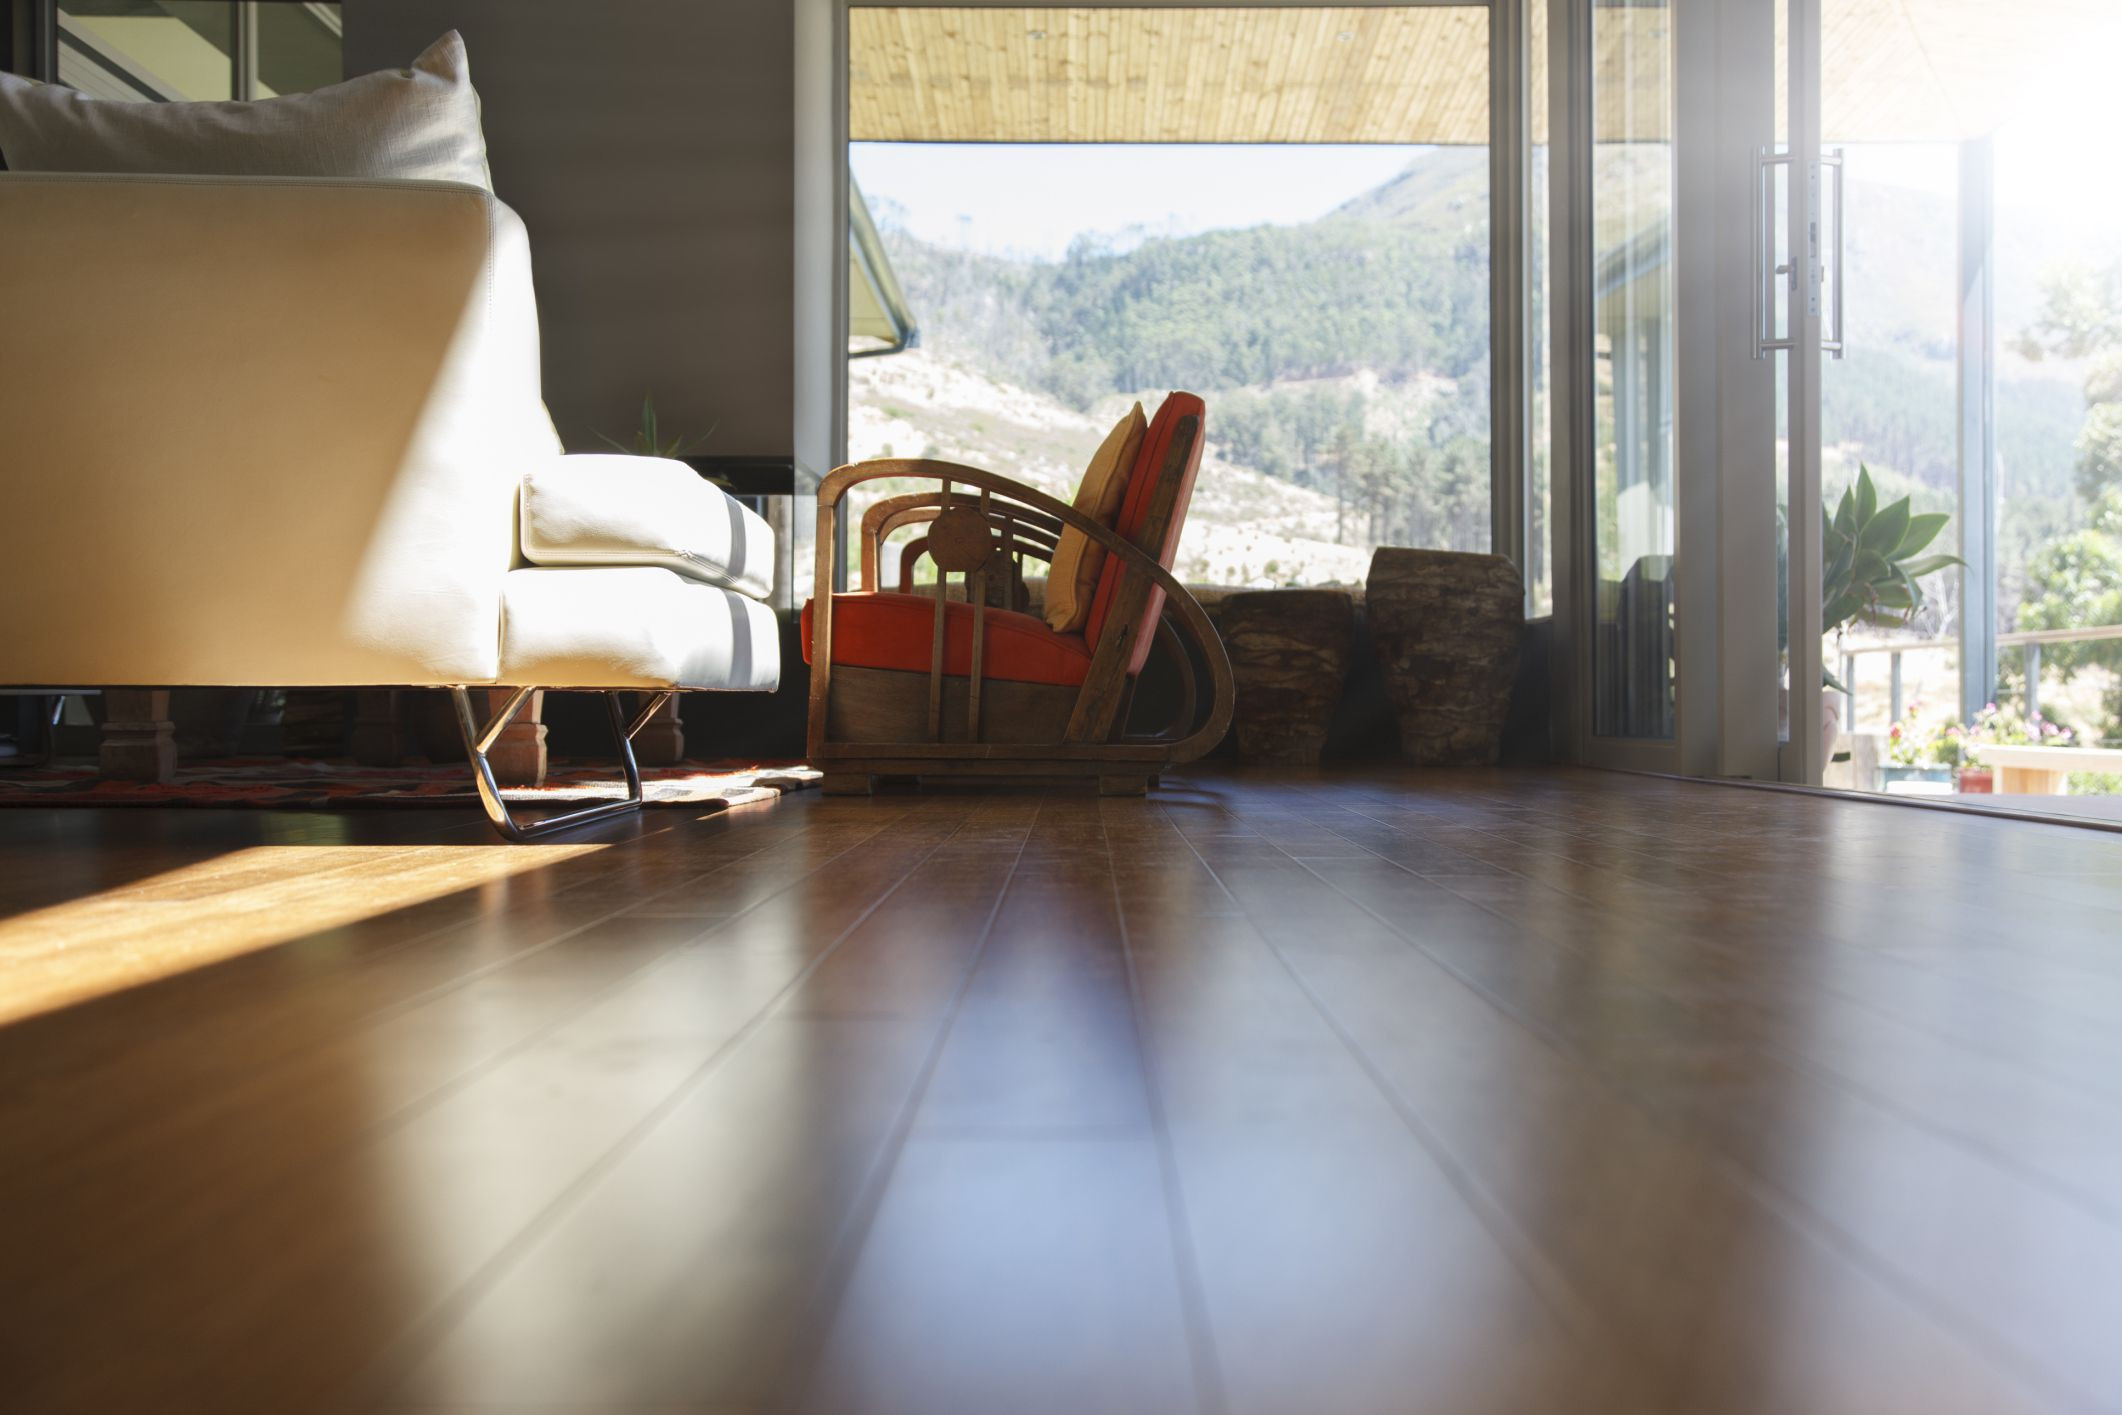 indoor humidity for hardwood floors of floating floors basics types and pros and cons in exotic hardwood flooring 525439899 56a49d3a3df78cf77283453d